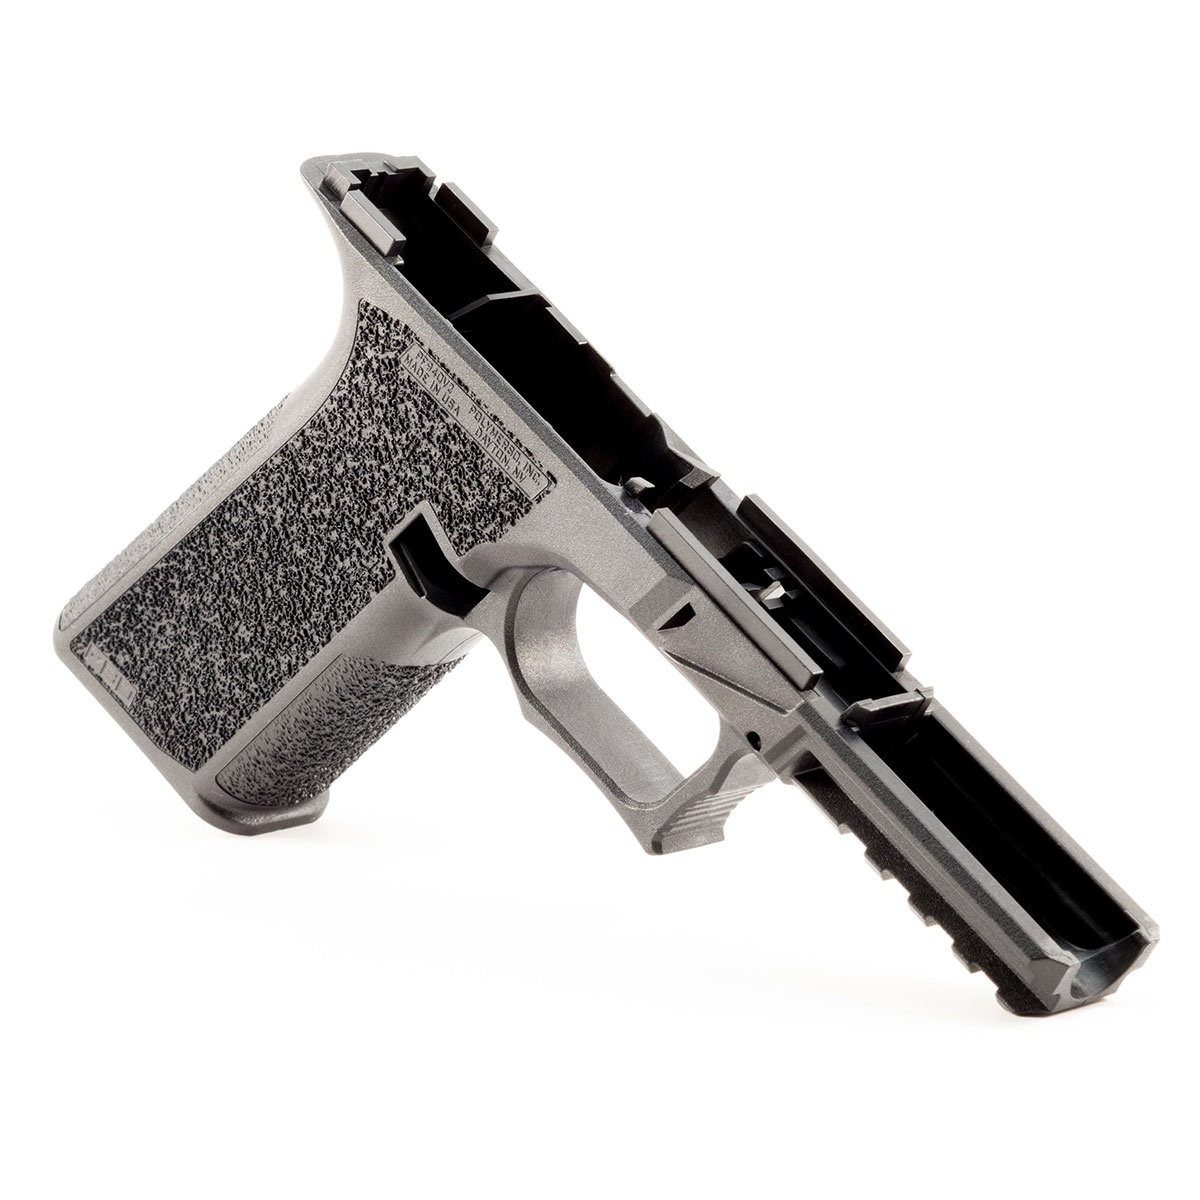 Glock Compatible 80% Frame Full Sized 9mm Or 40 Cal Fits Glock 17, 22, 33, 34, 35 Gen 3 Slides